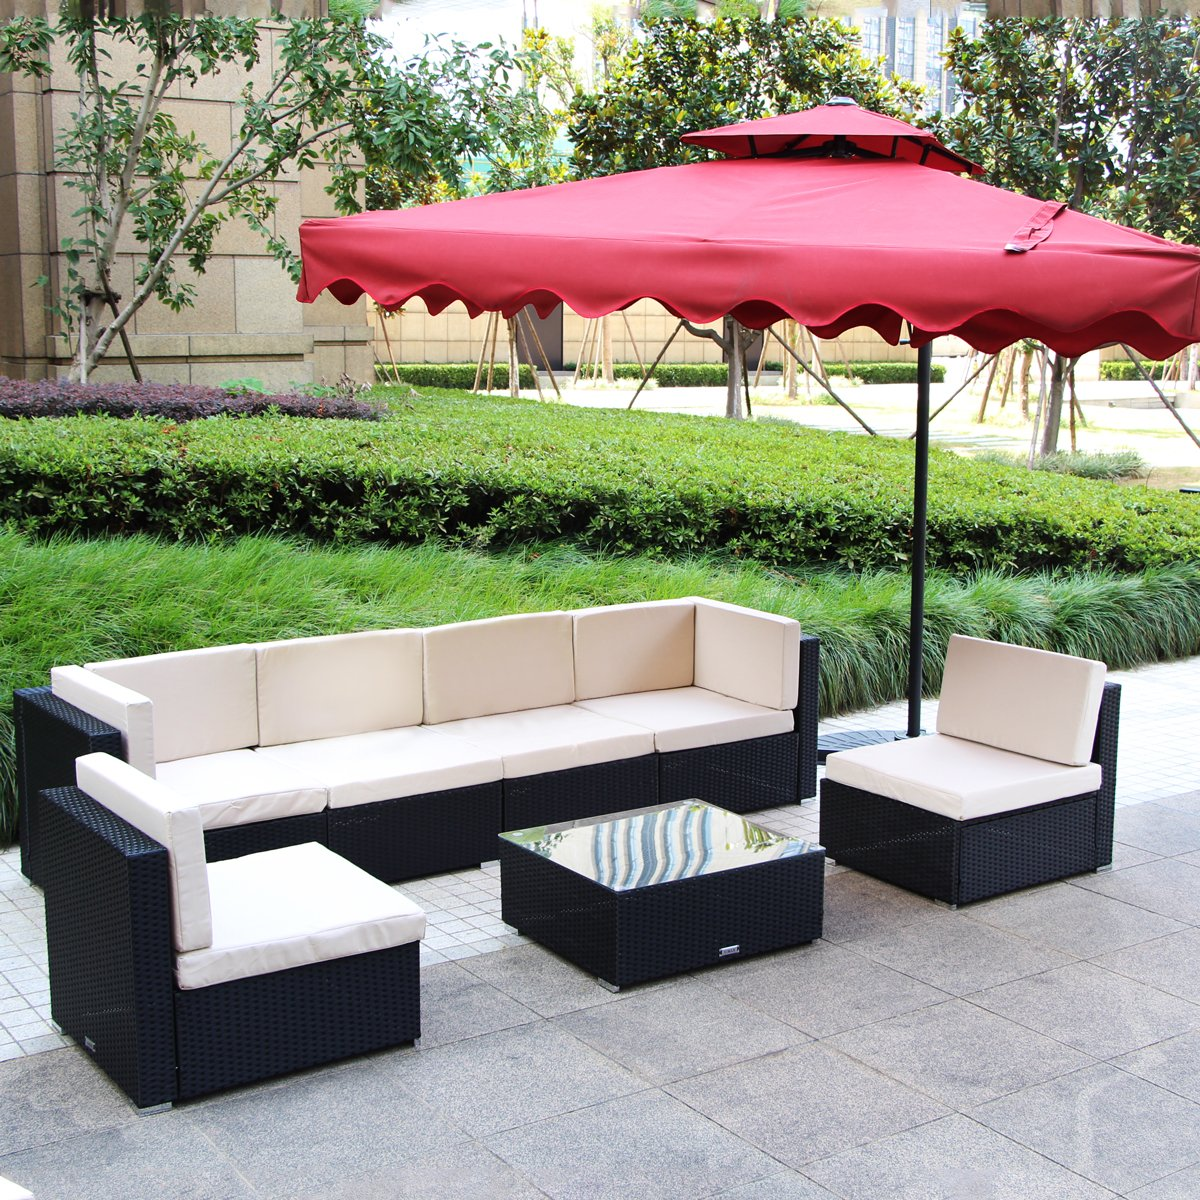 U-MAX 7 Piece 7-12 Pieces Patio PE Rattan Wicker Sofa Sectional Furniture Set (7 Pieces, Black) by U-MAX (Image #1)